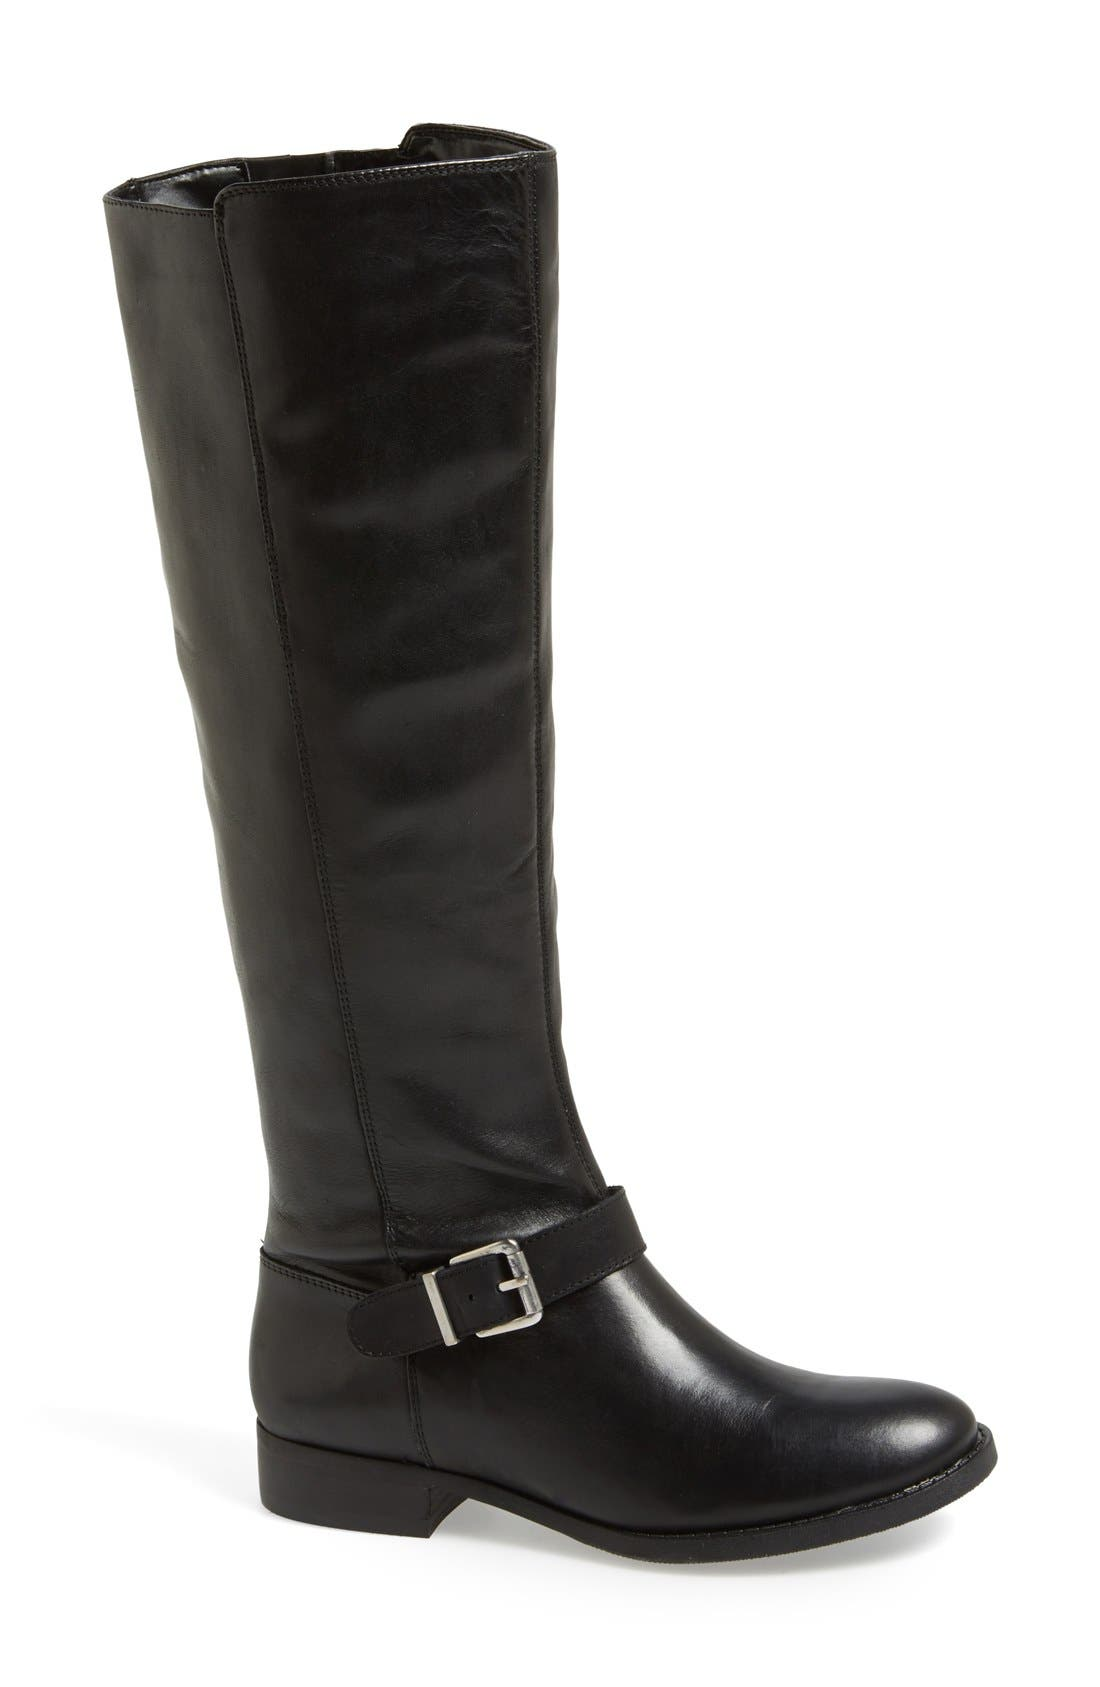 Main Image - Sole Society 'Shineh' Riding Boot (Women)